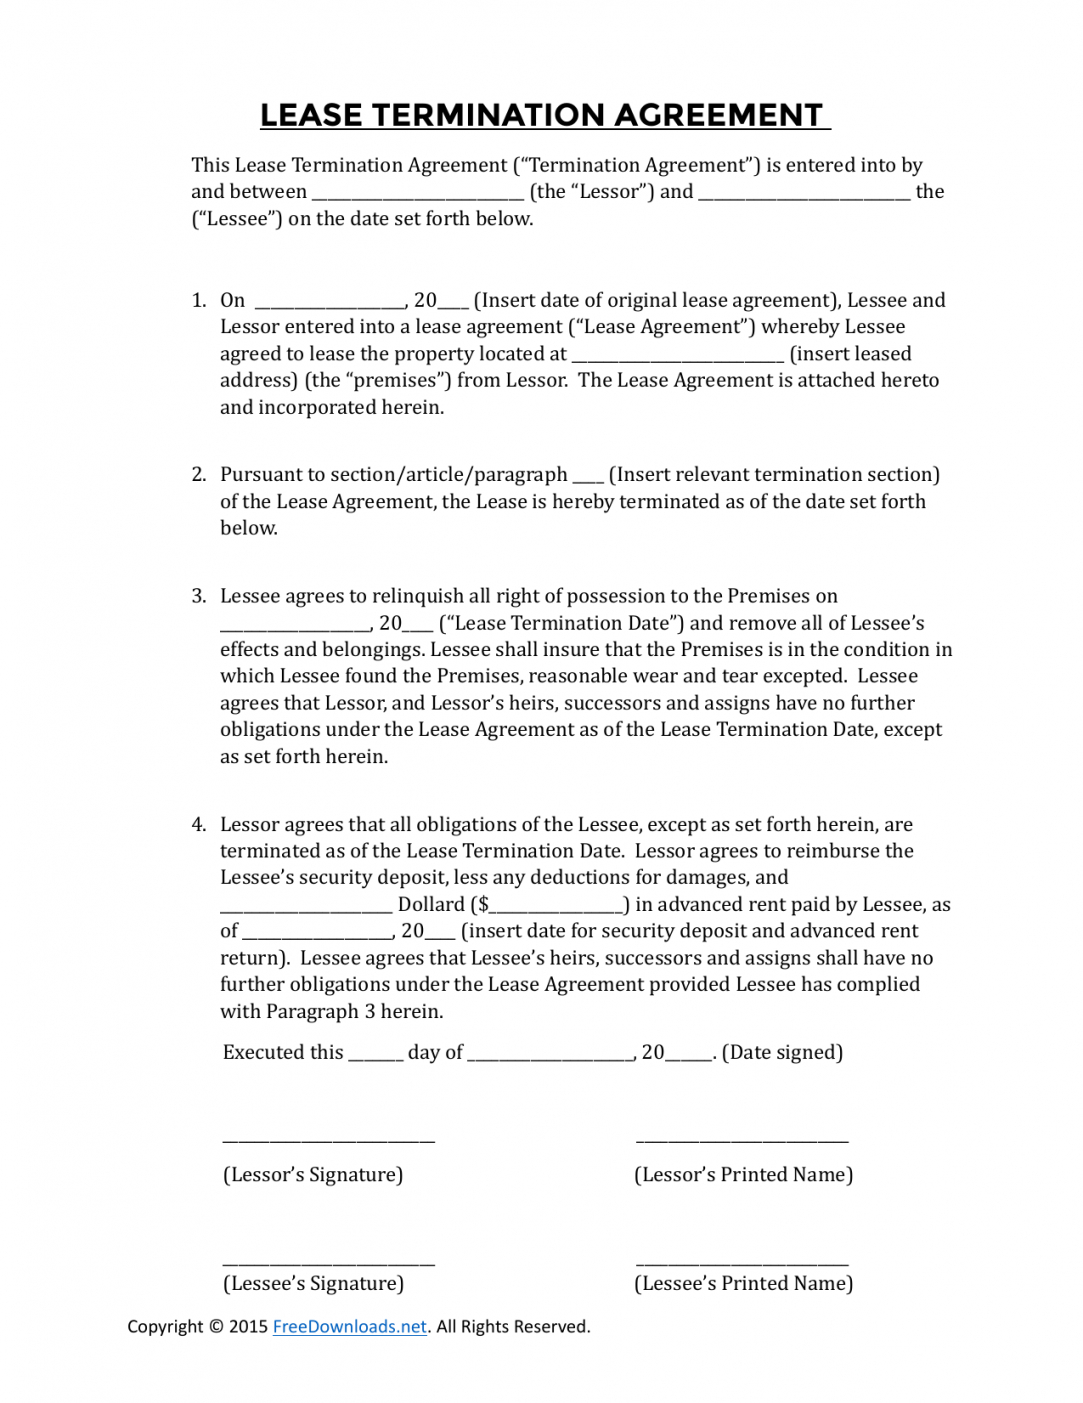 editable download early lease termination agreement  pdf  word cancellation of lease agreement template example